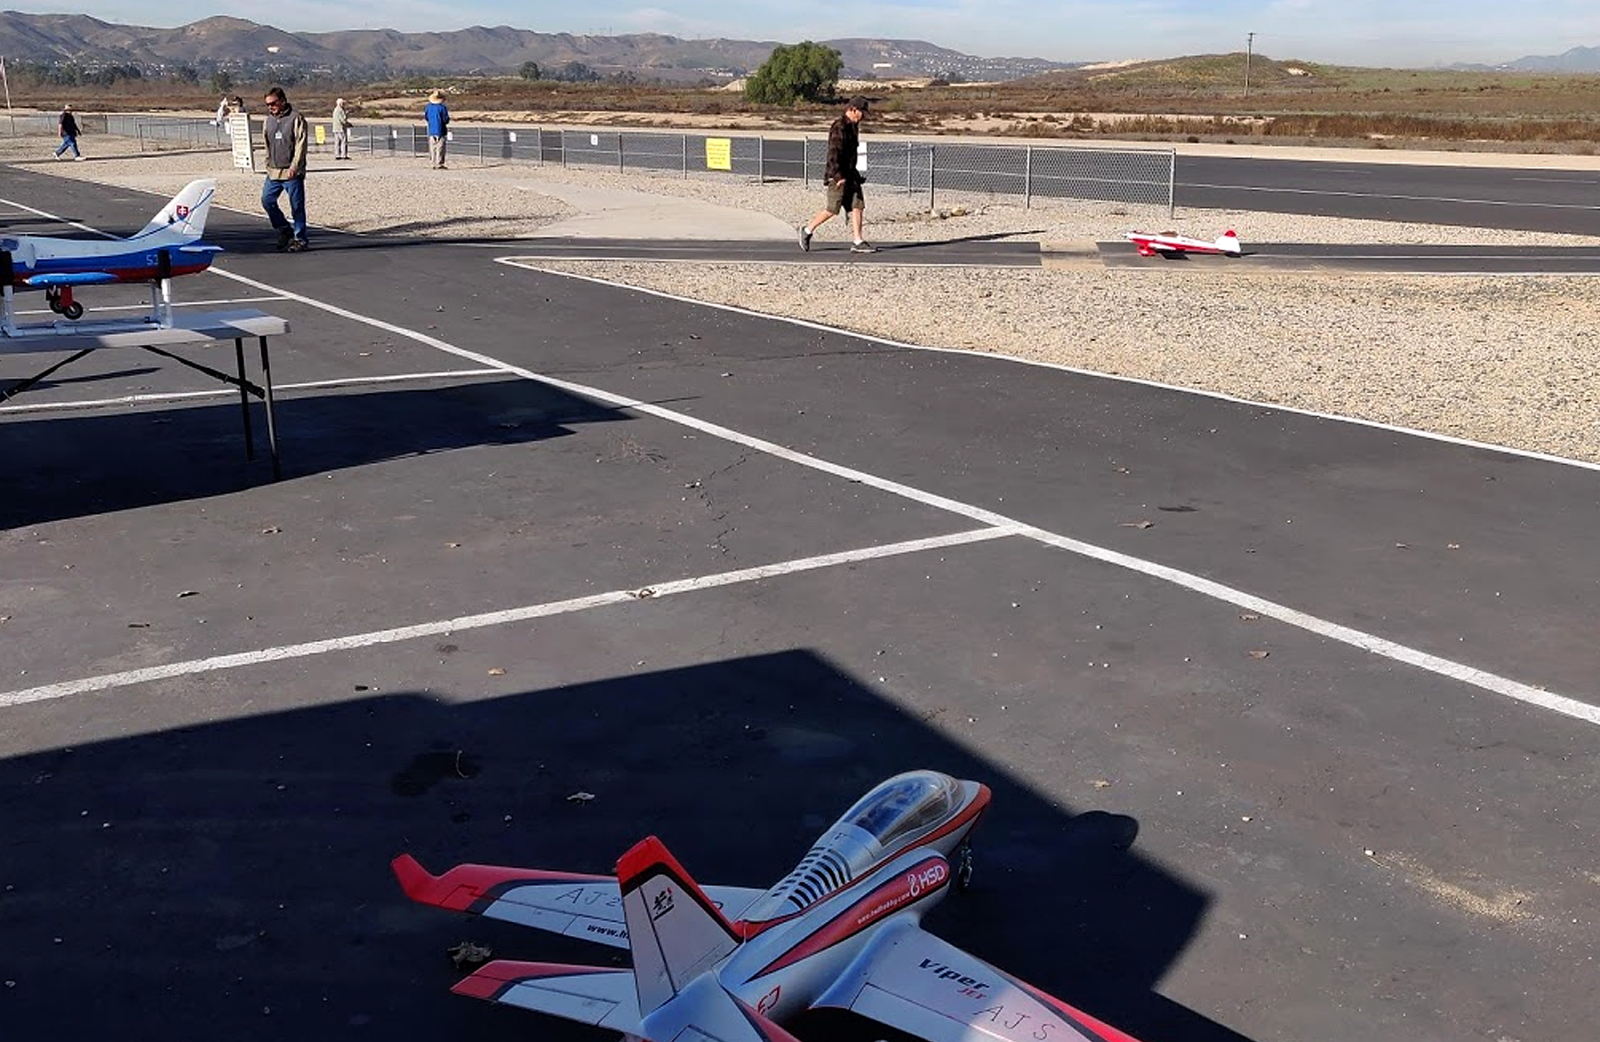 Model airplanes sit on the asphalt a Prado park airfield.